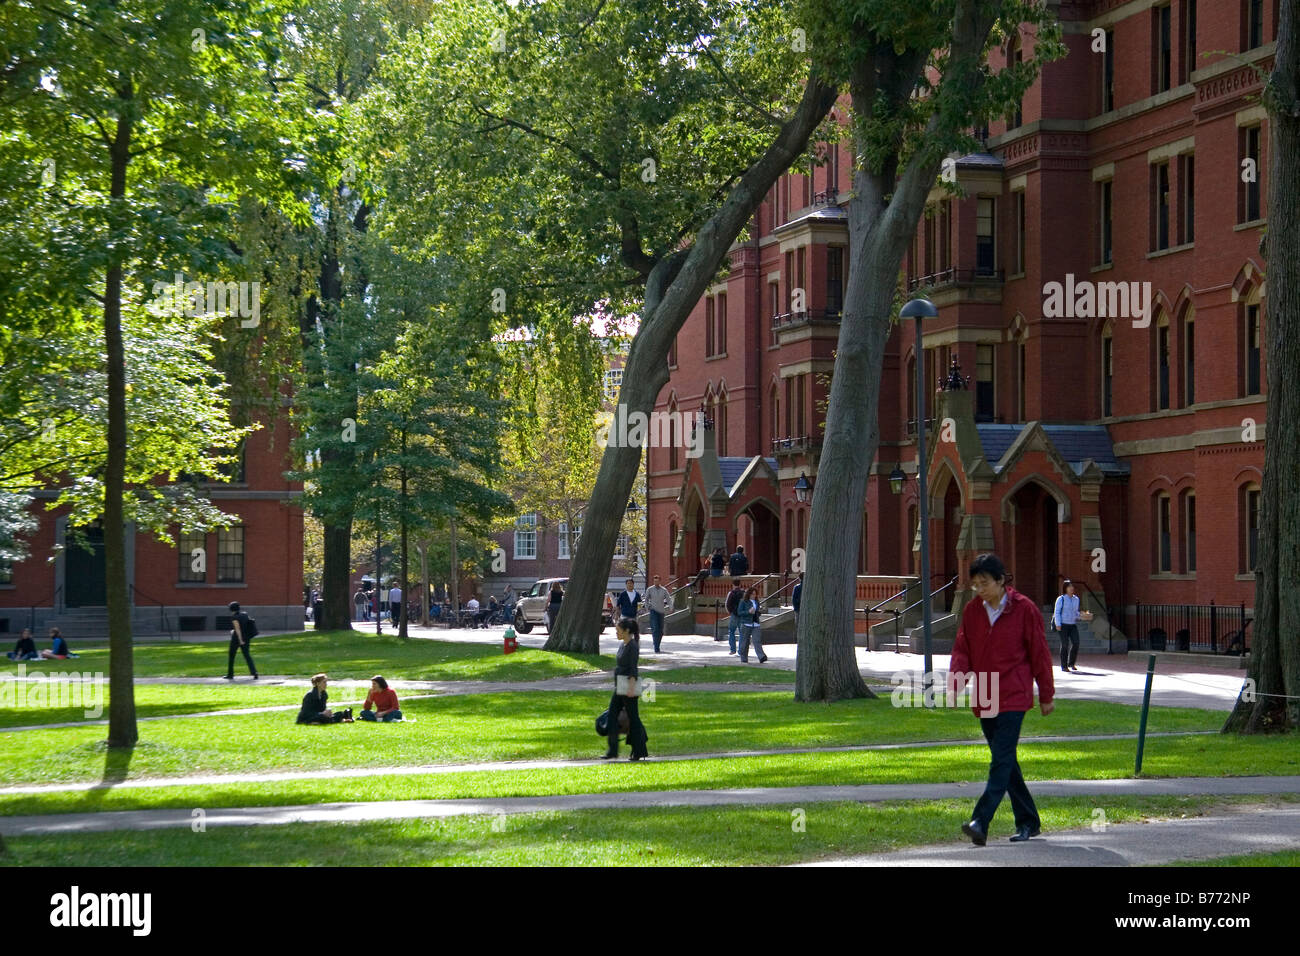 Harvard Yard at Harvard University in Cambridge Greater Boston Massachusetts USA - Stock Image